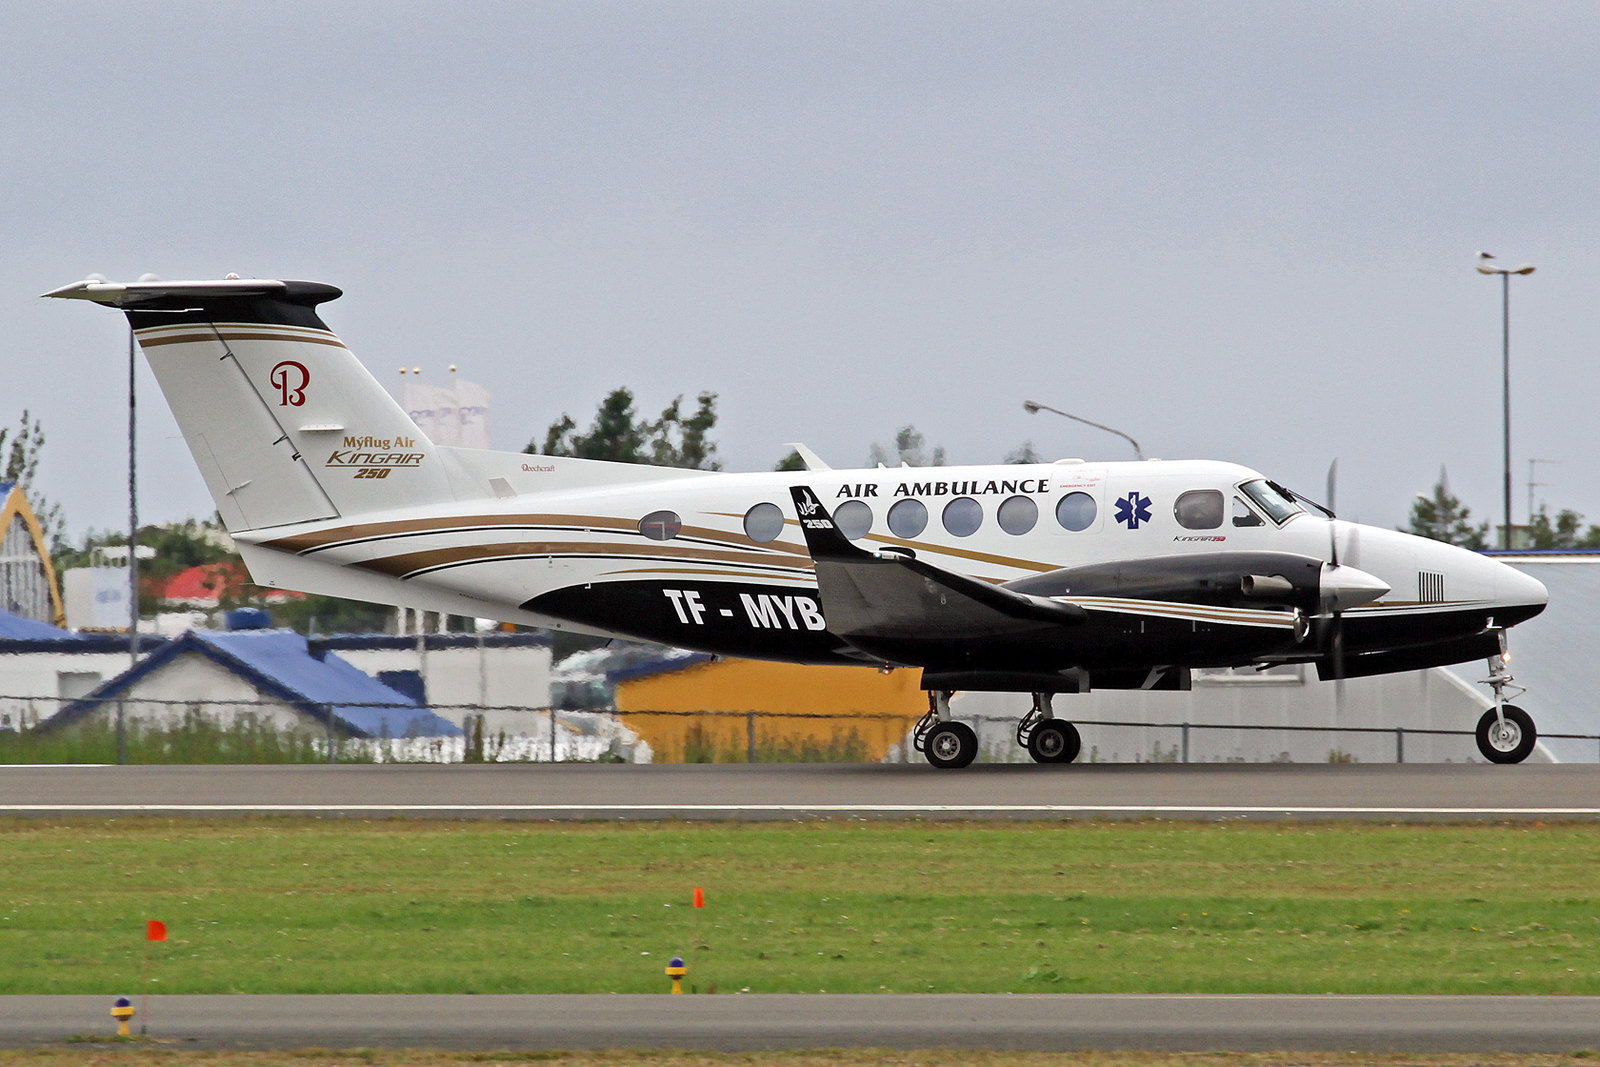 Mýflug Air Beechcraft B250 King Air TF-MYB, RKV, 10. August 2020